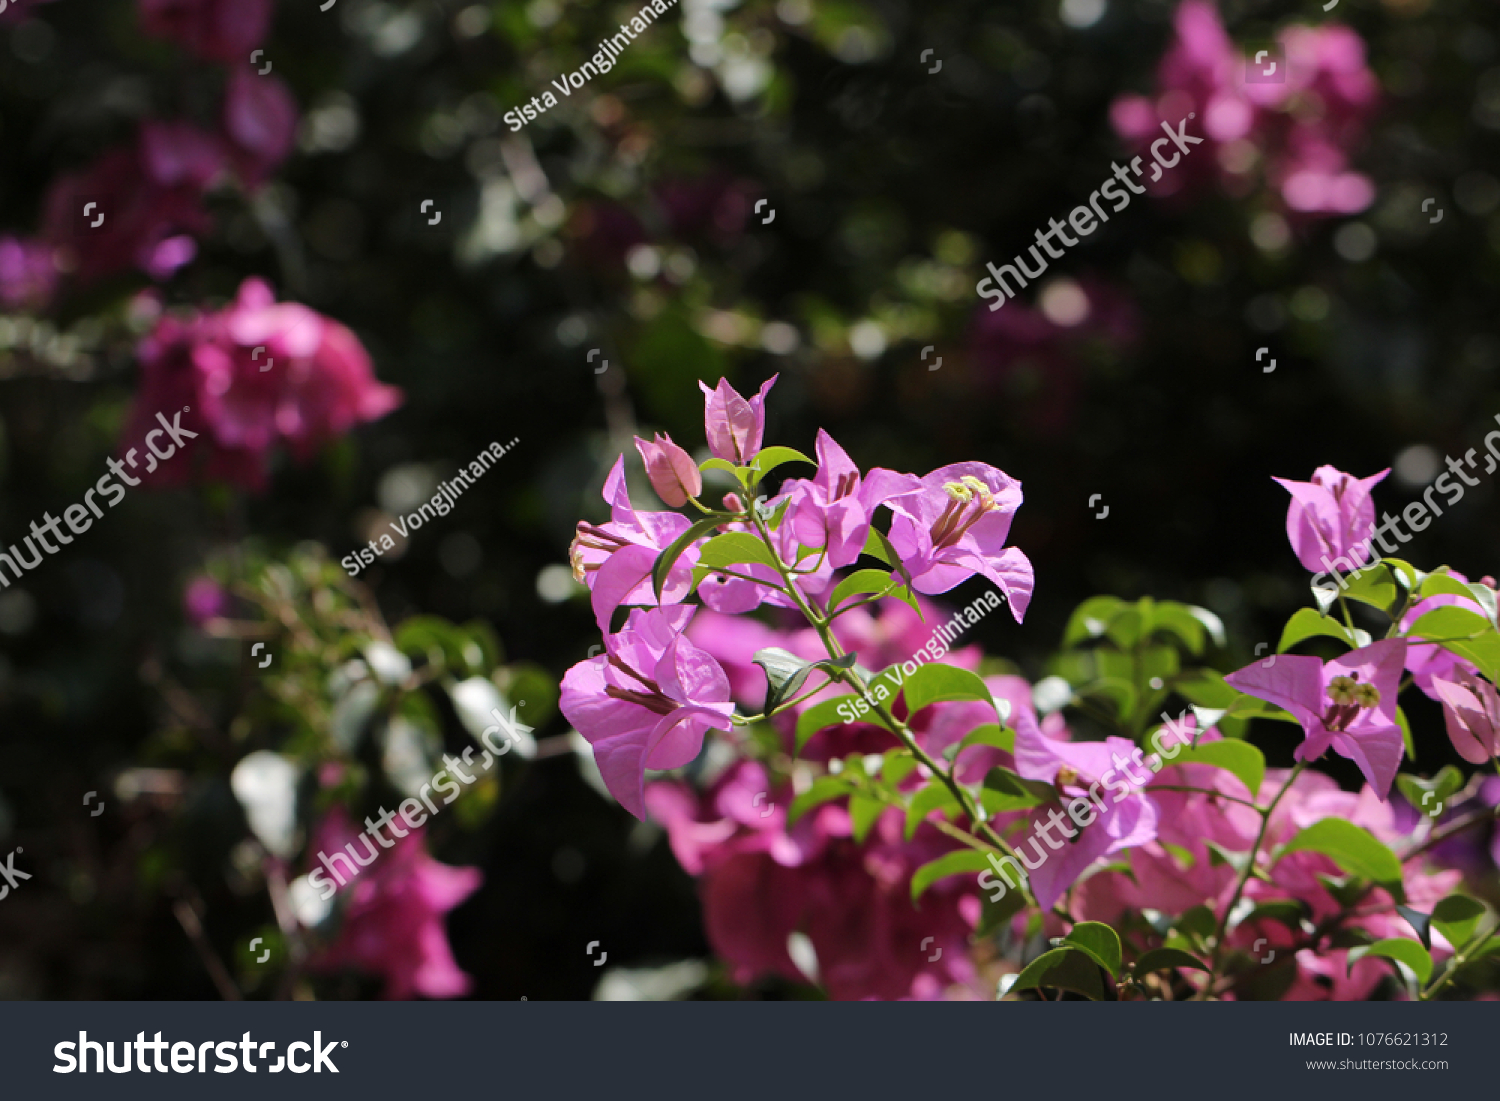 Bougainvillea Wallpaper Bougainvillea Glabra Choisy Paper Flowers Wallpaper Stock Photo